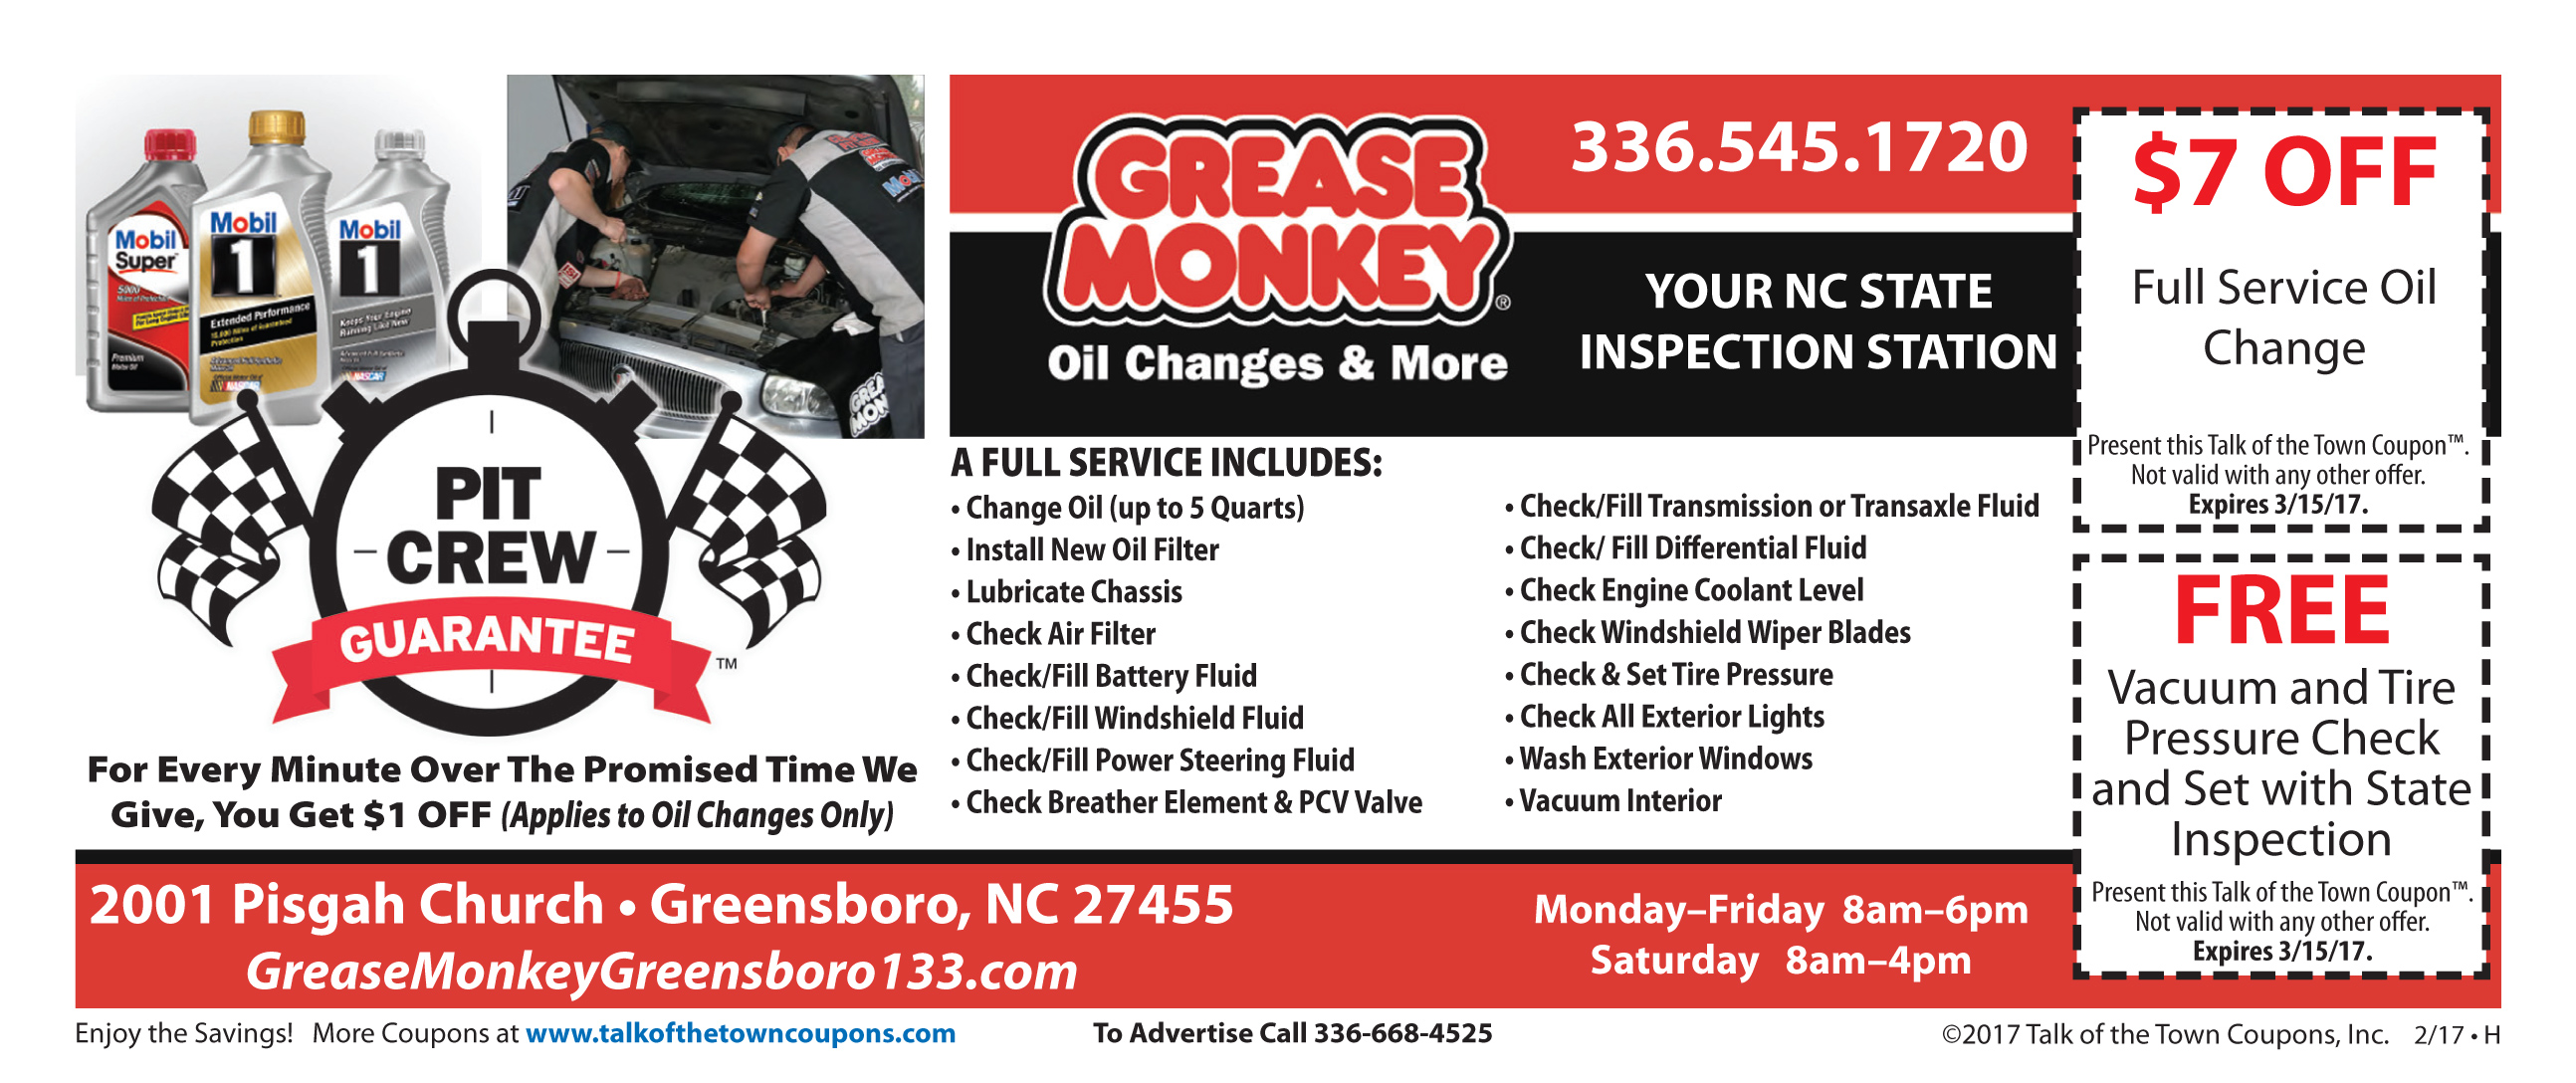 Grease Monkey Booklet Offer Image